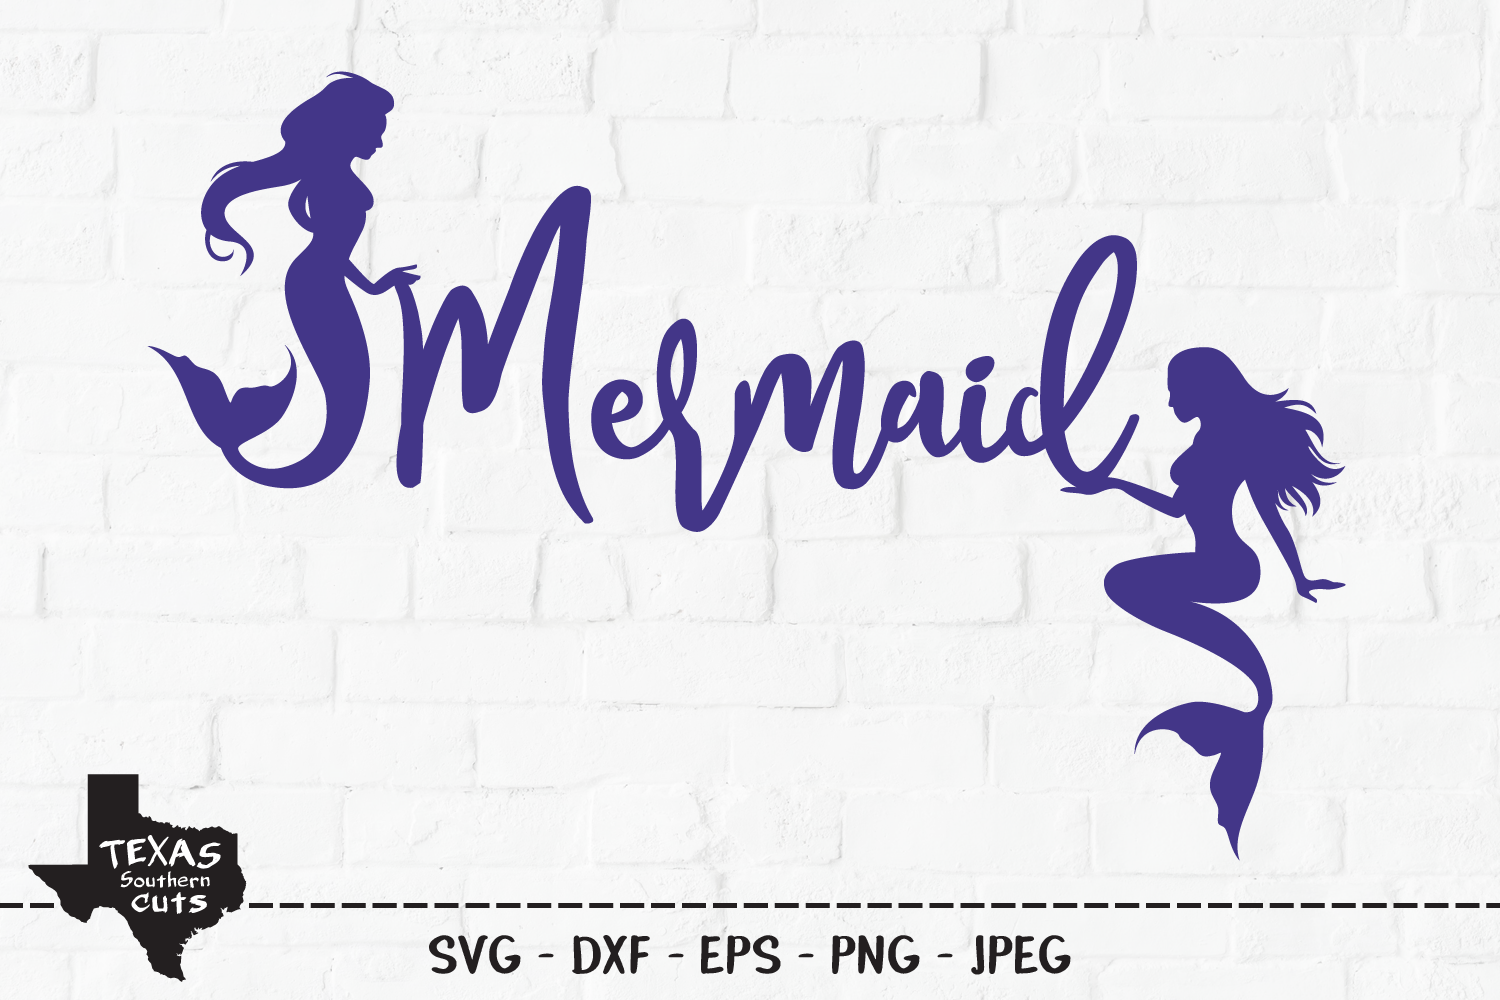 Download Free Mermaid Summer Shirt Design Graphic By Texassoutherncuts for Cricut Explore, Silhouette and other cutting machines.